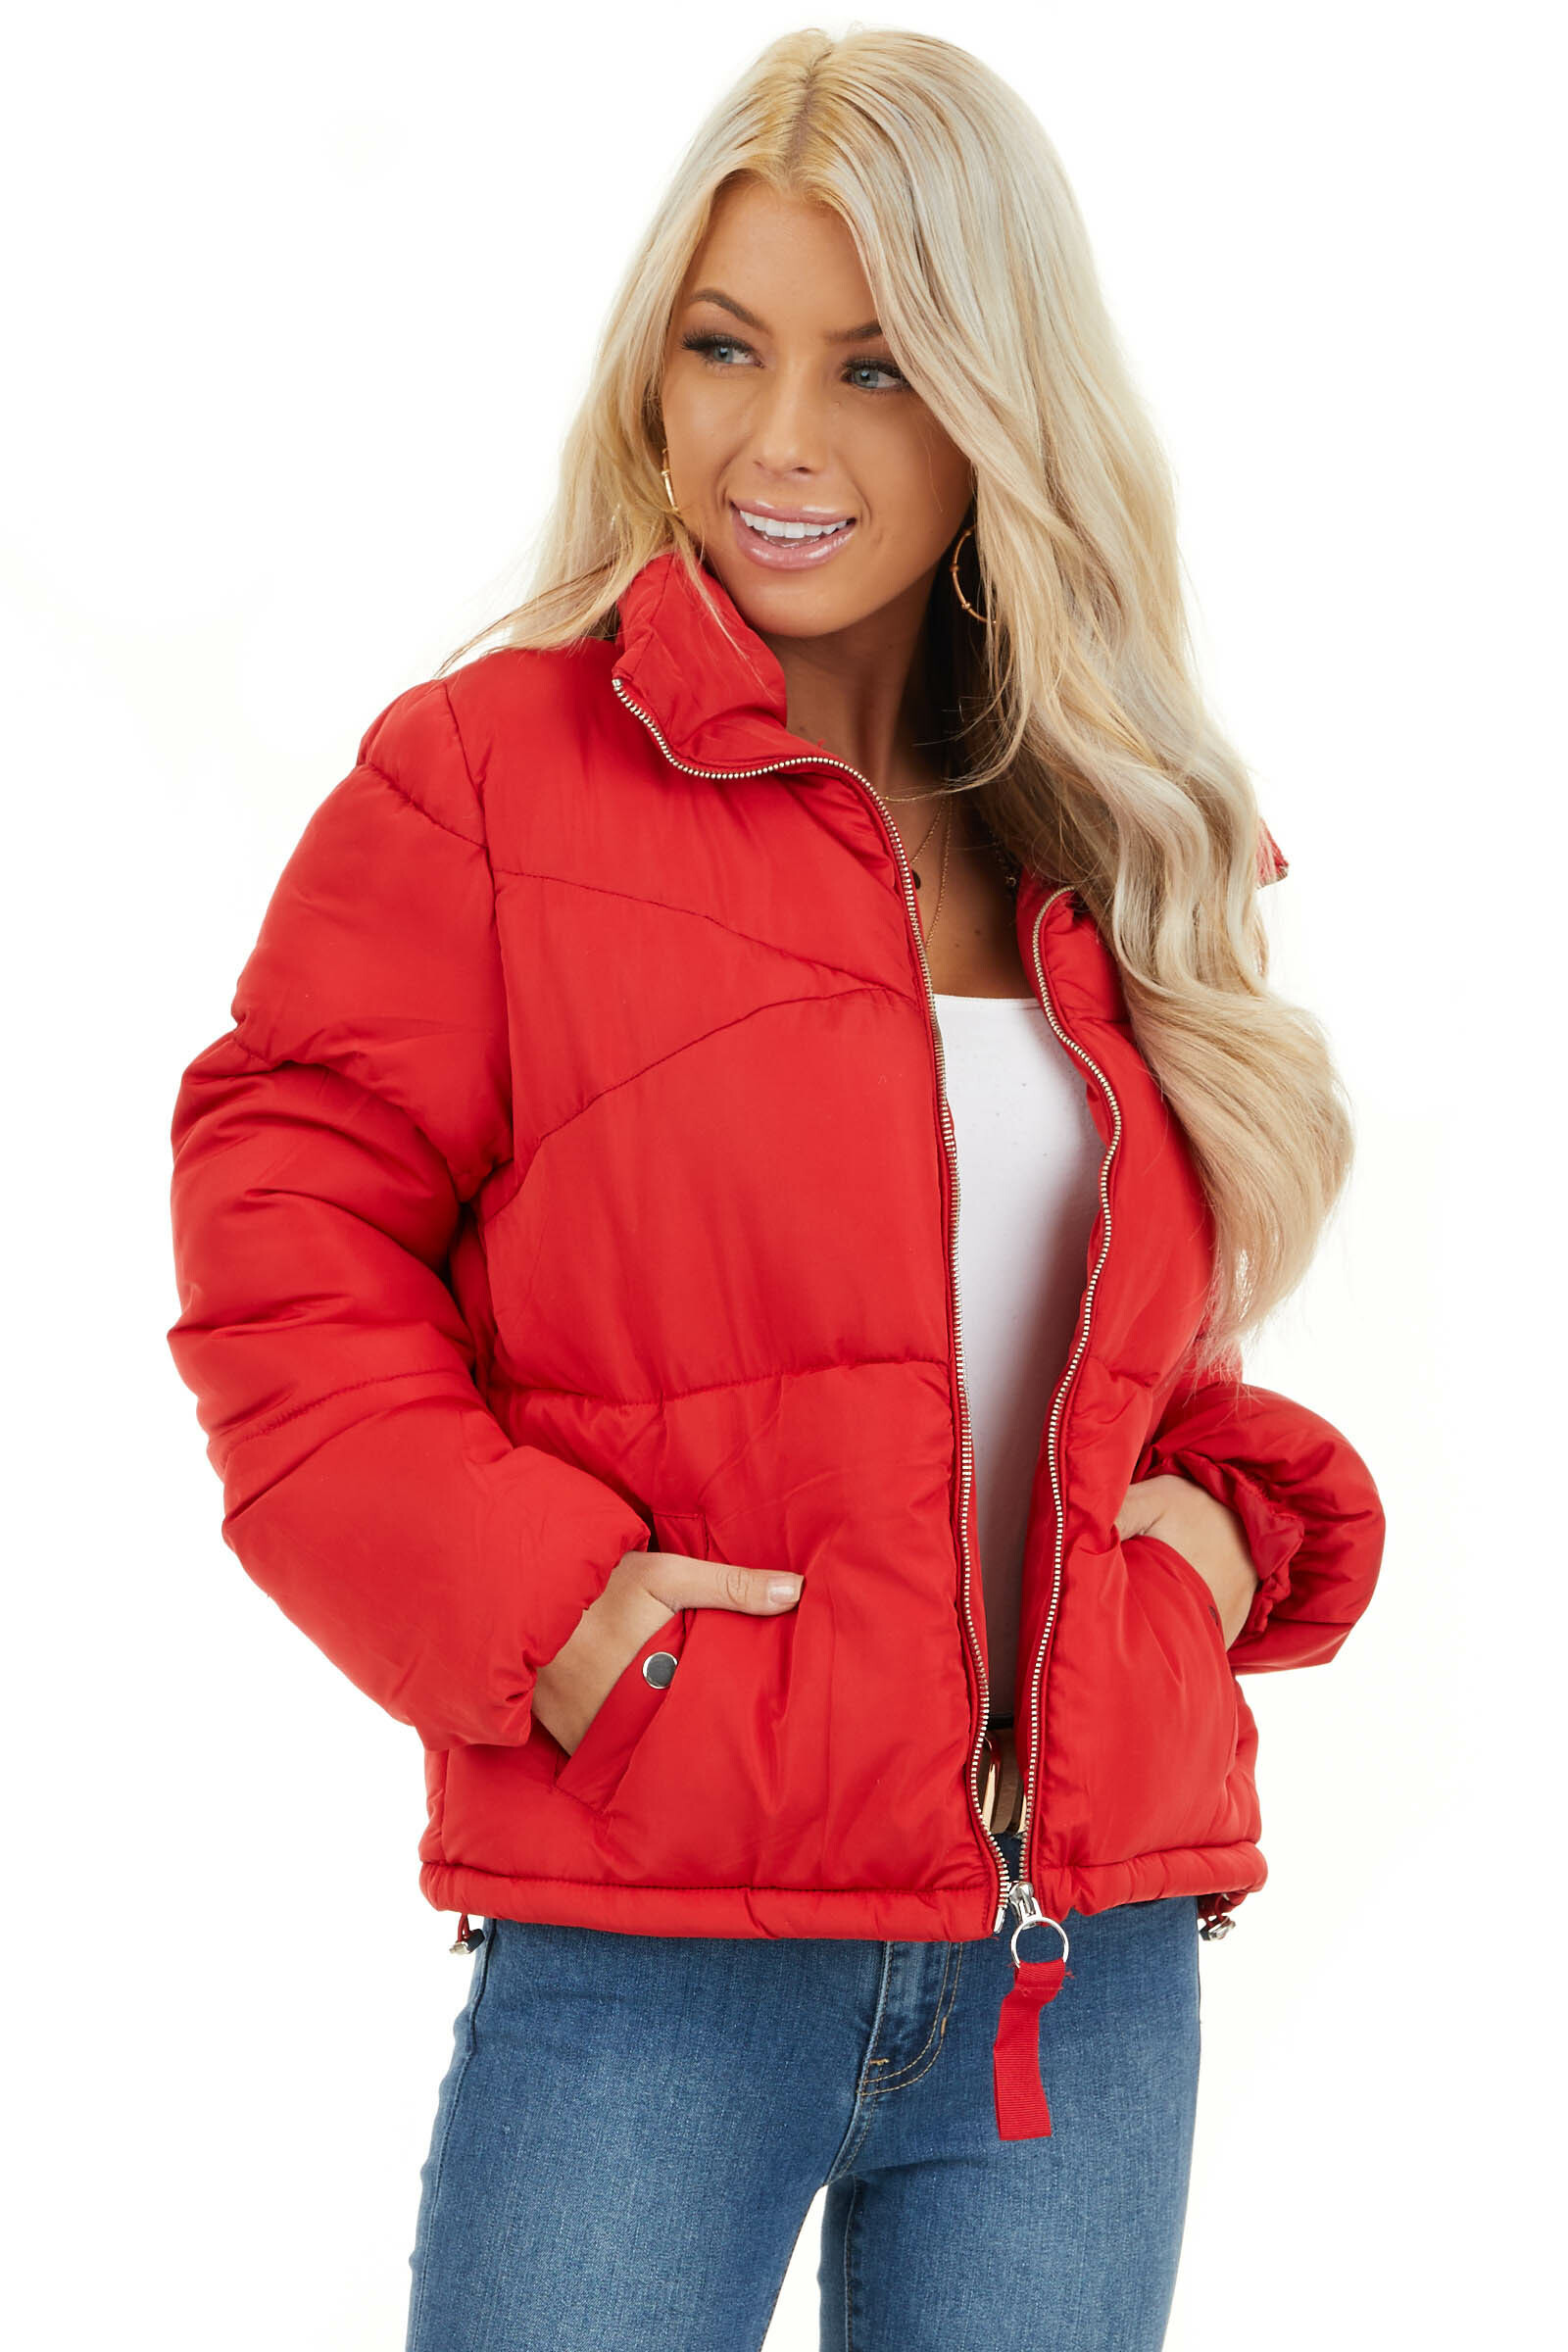 Lipstick Red Long Sleeve Puffy Coat with Pockets front close up